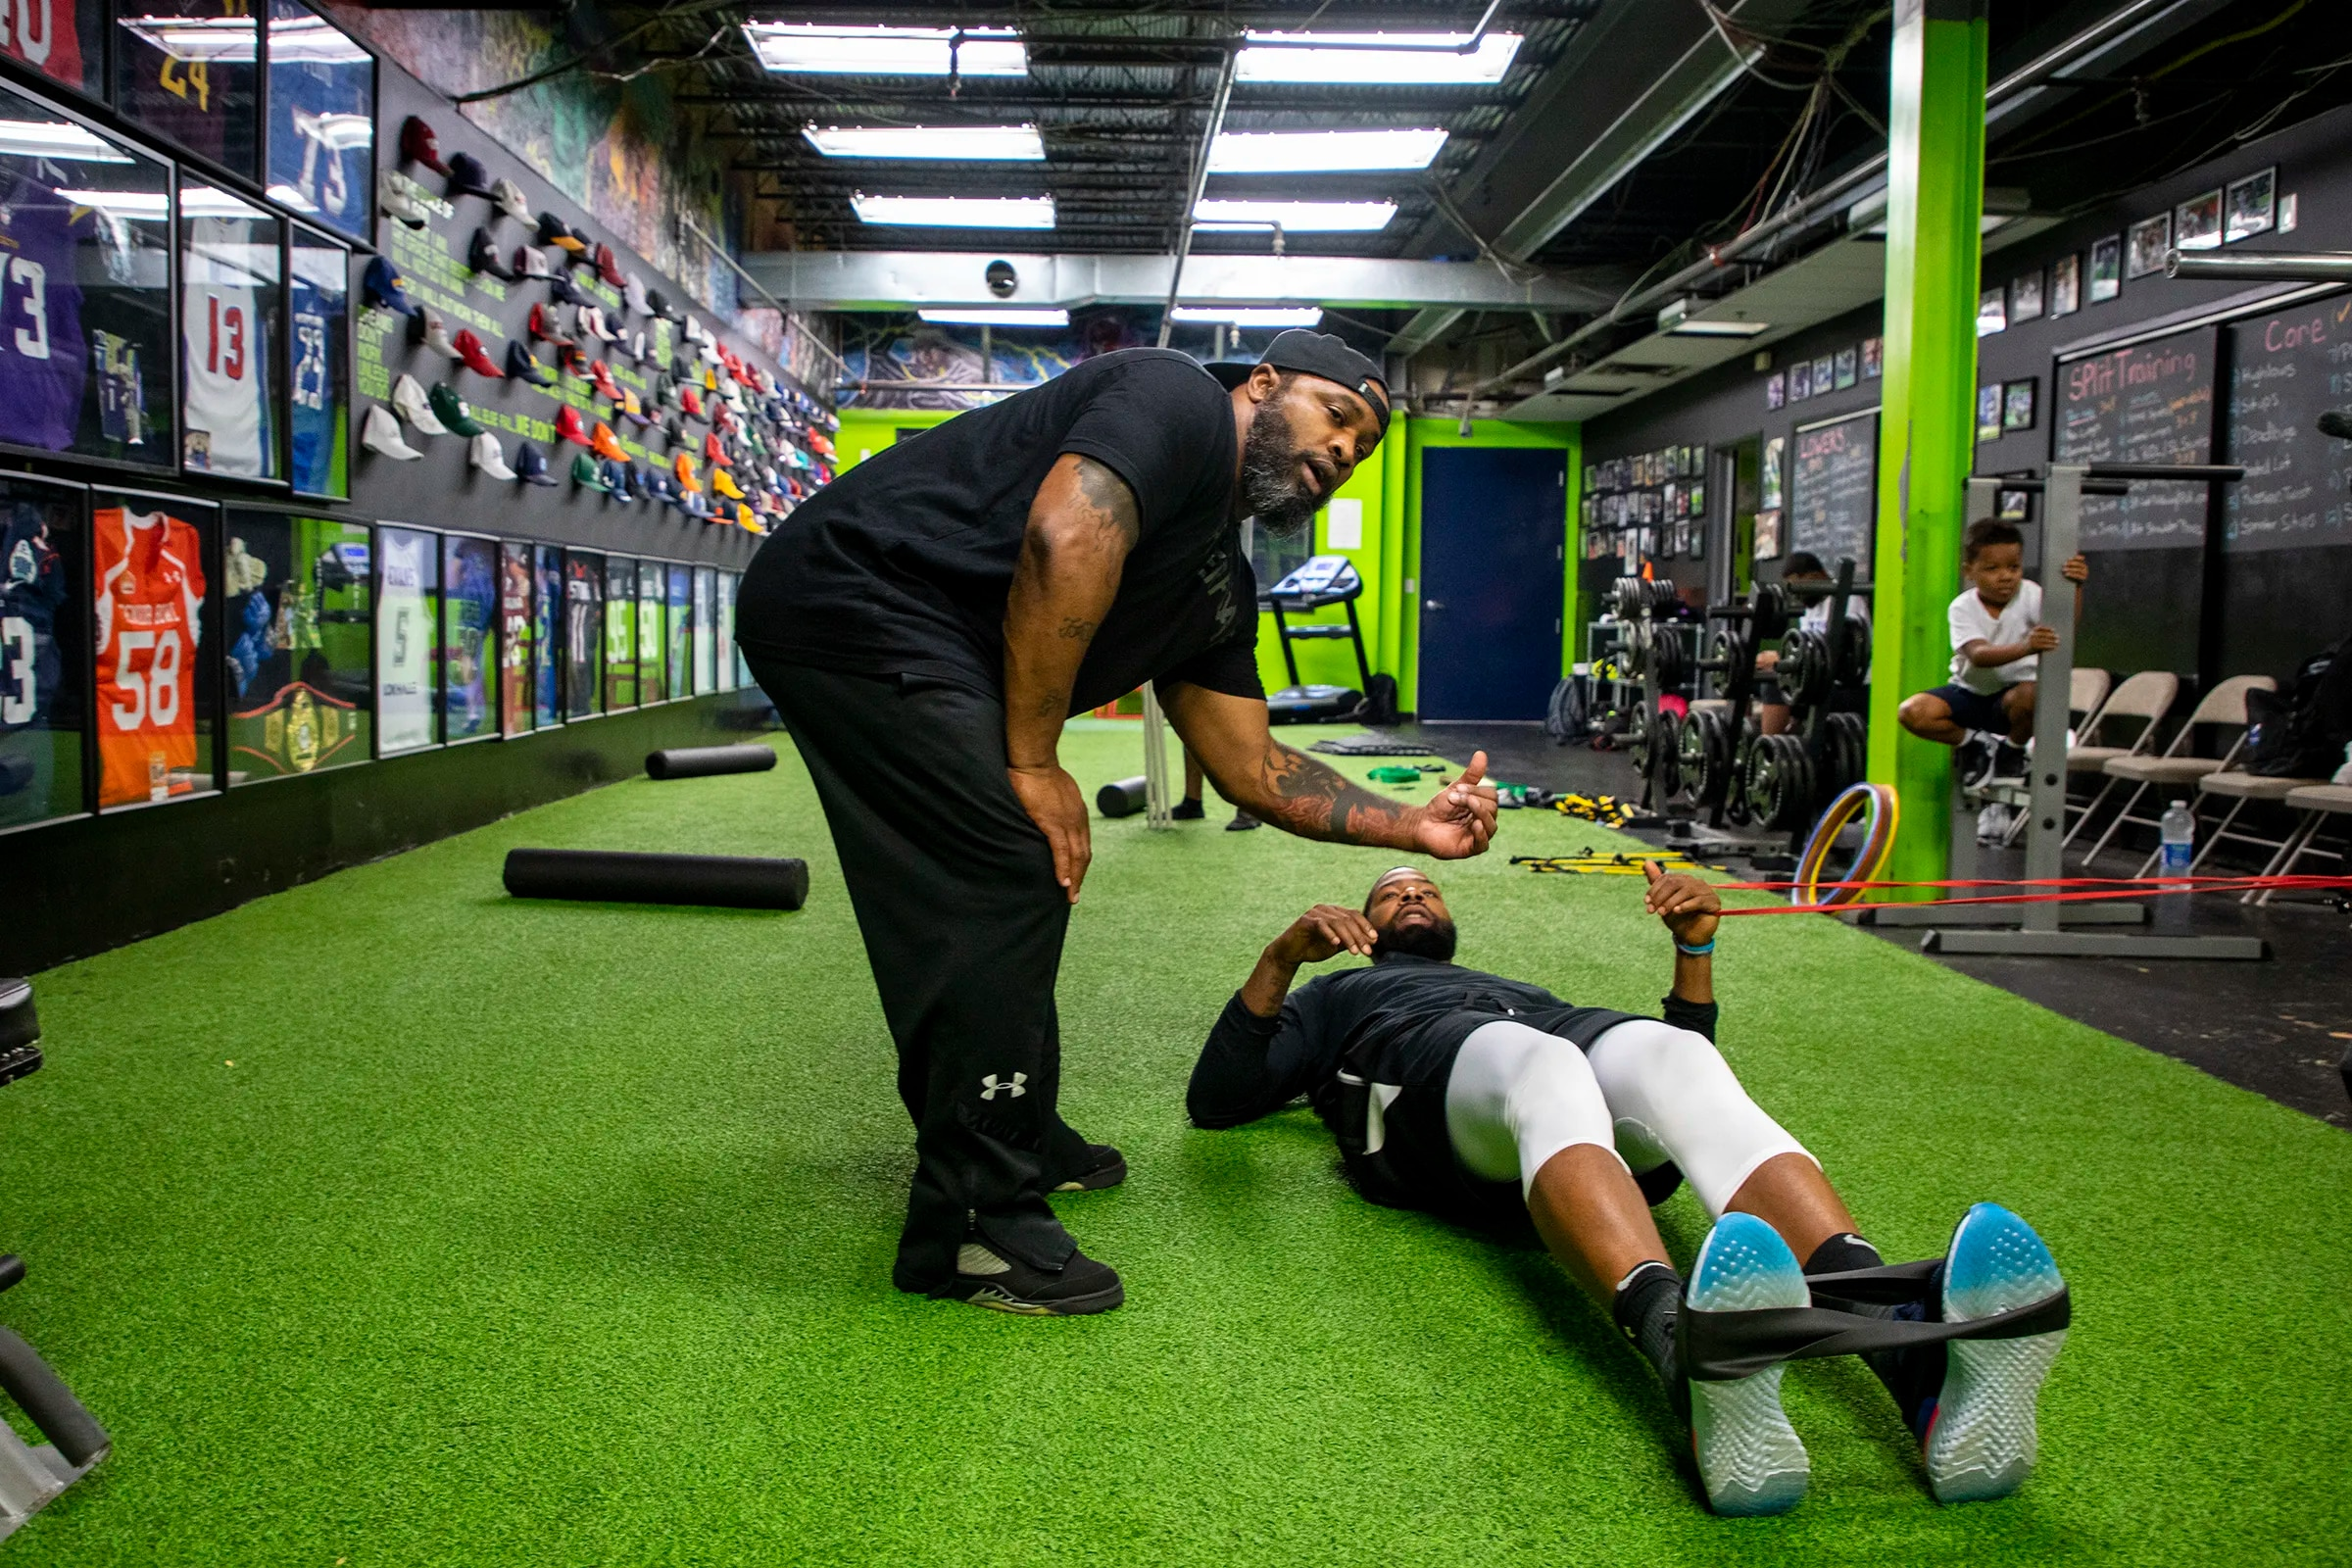 """Greg Garrett, 46, of West Philadelphia, Pa., owner and head strength coach at Level 40 Training & Performance Center, is working with NBA player Marcus Morris, his brother Markieff Morris, and B.J  Johnson on their upper body on Wednesday, July 31, 2019. Garrett has been owner of his facility for seven years and about five years of training the Morris twins. """"We build relationships like no other,"""" Garrett said. """"That bond that you get and to see these guys from nothing to big time athletes."""""""